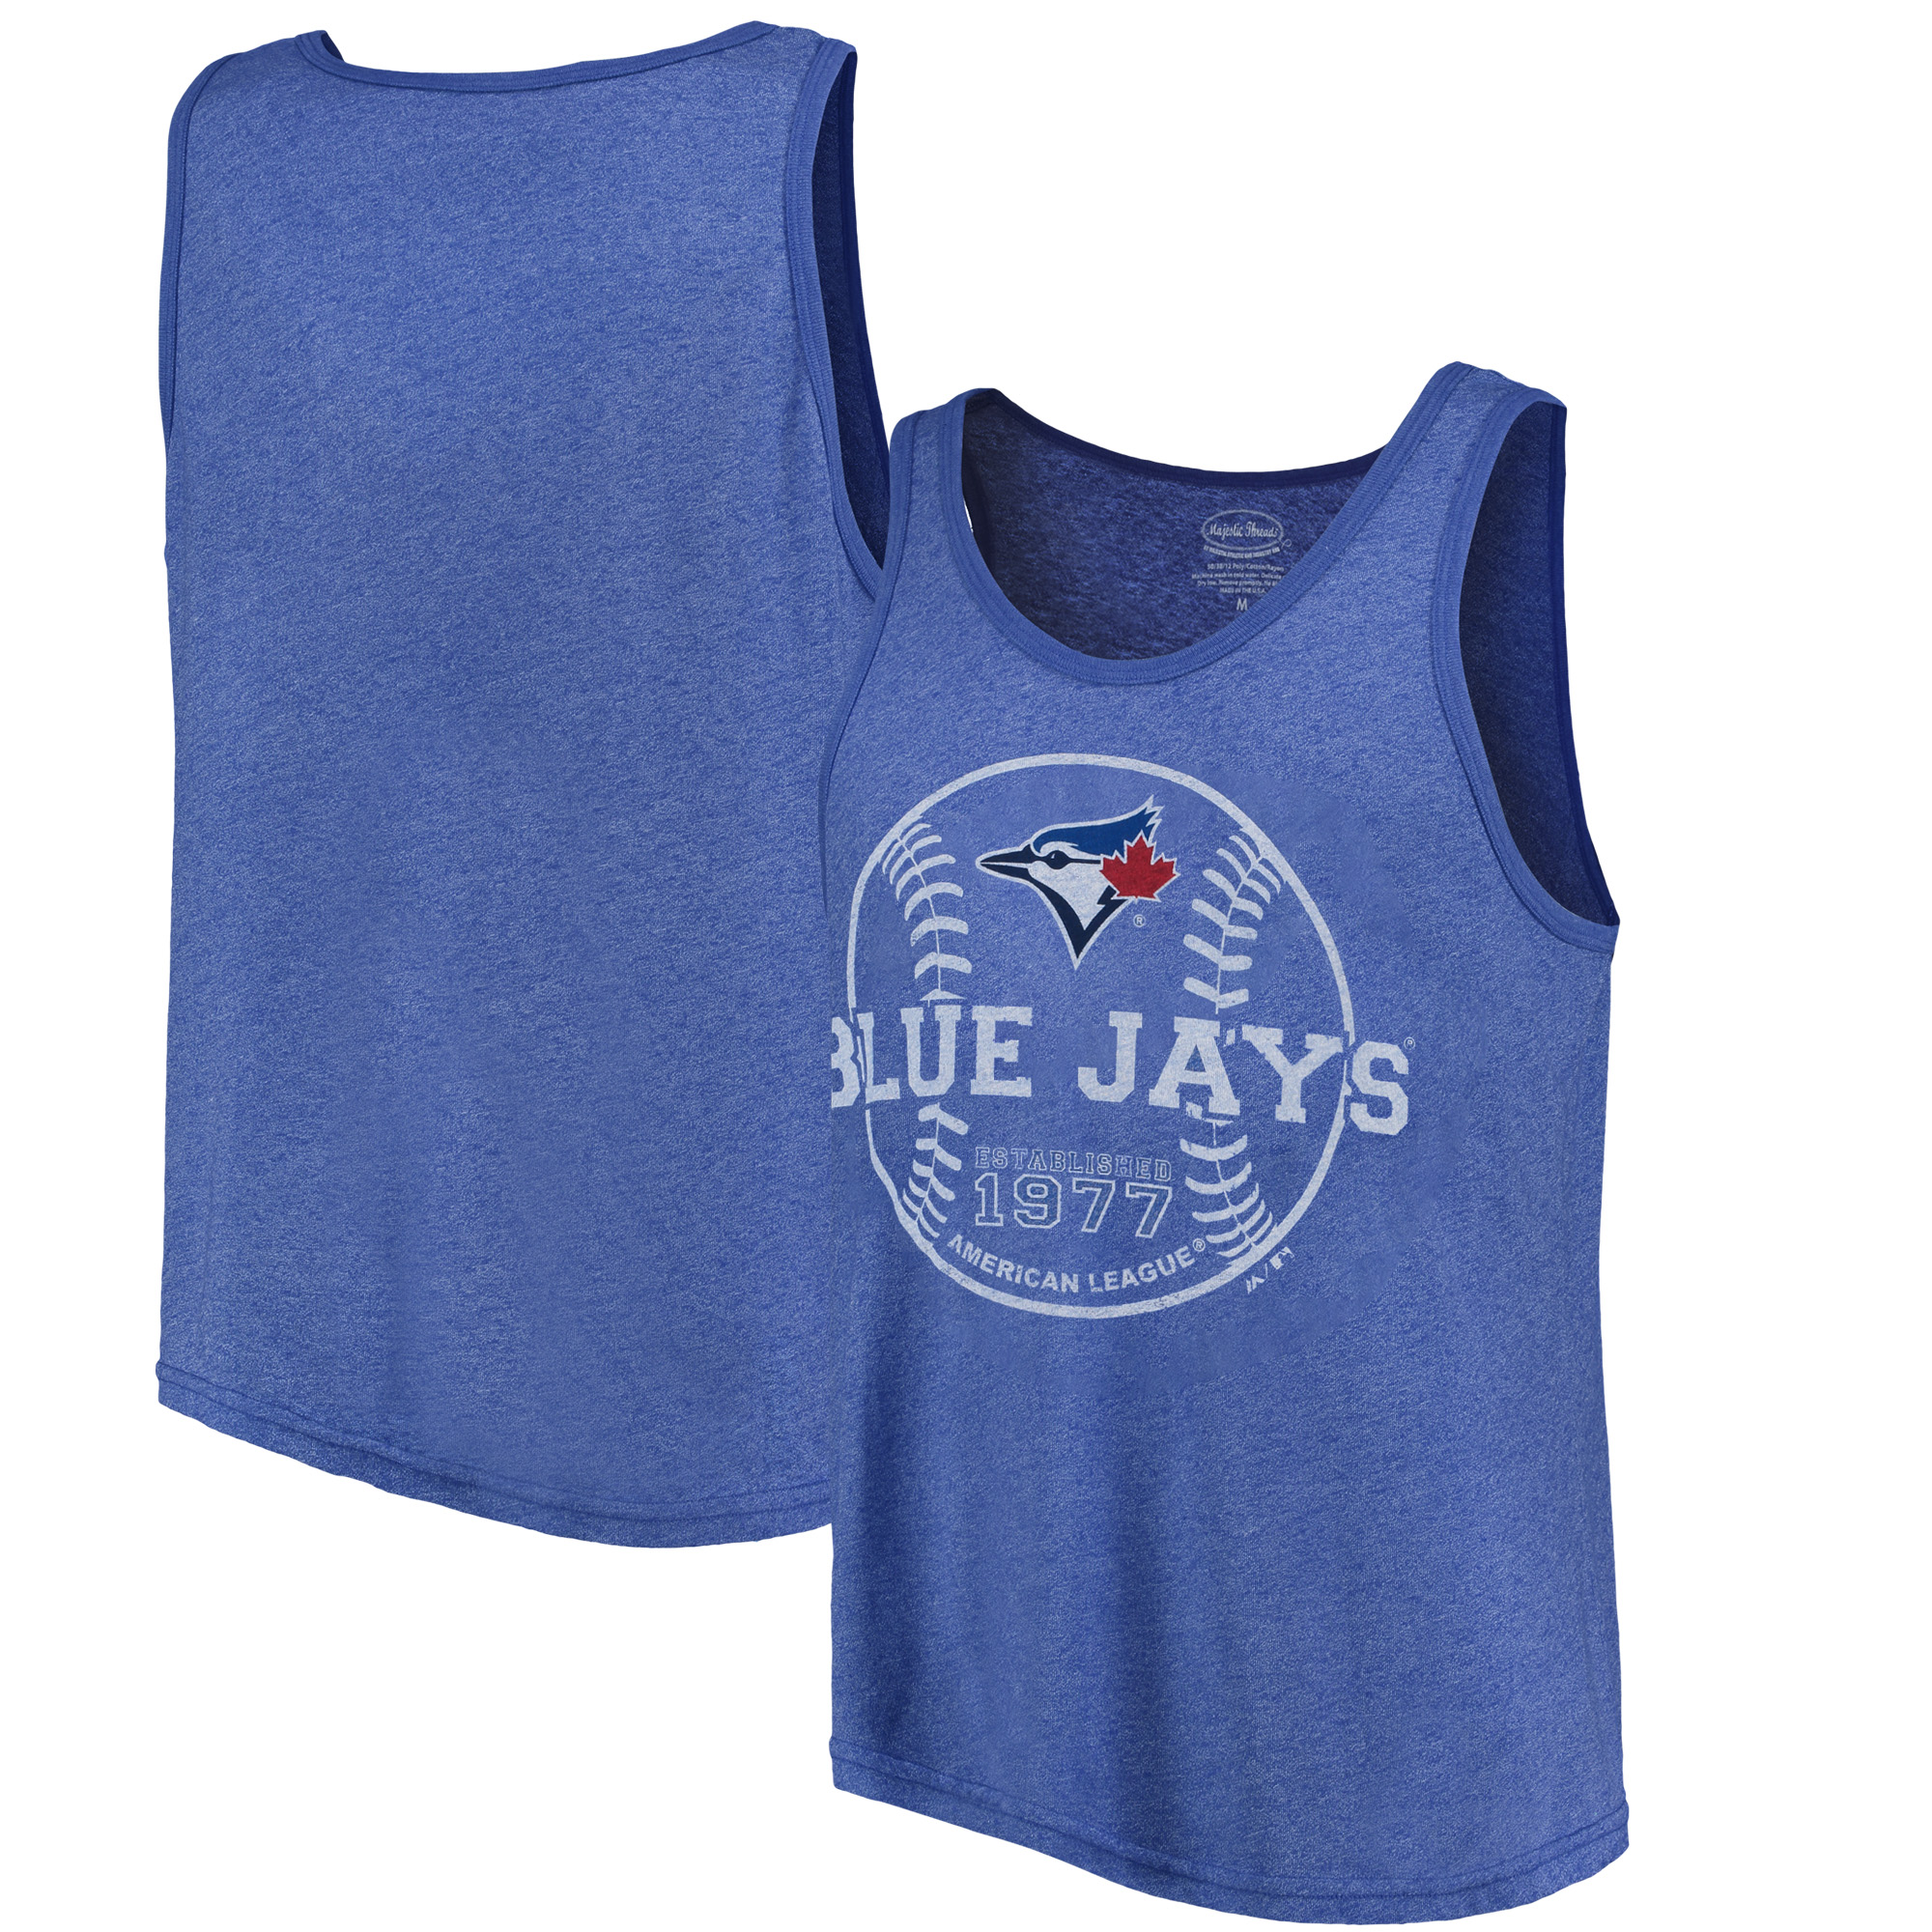 Toronto Blue Jays Majestic Threads The Stretch Contrast Tri-Blend Tank Top - Heathered Royal